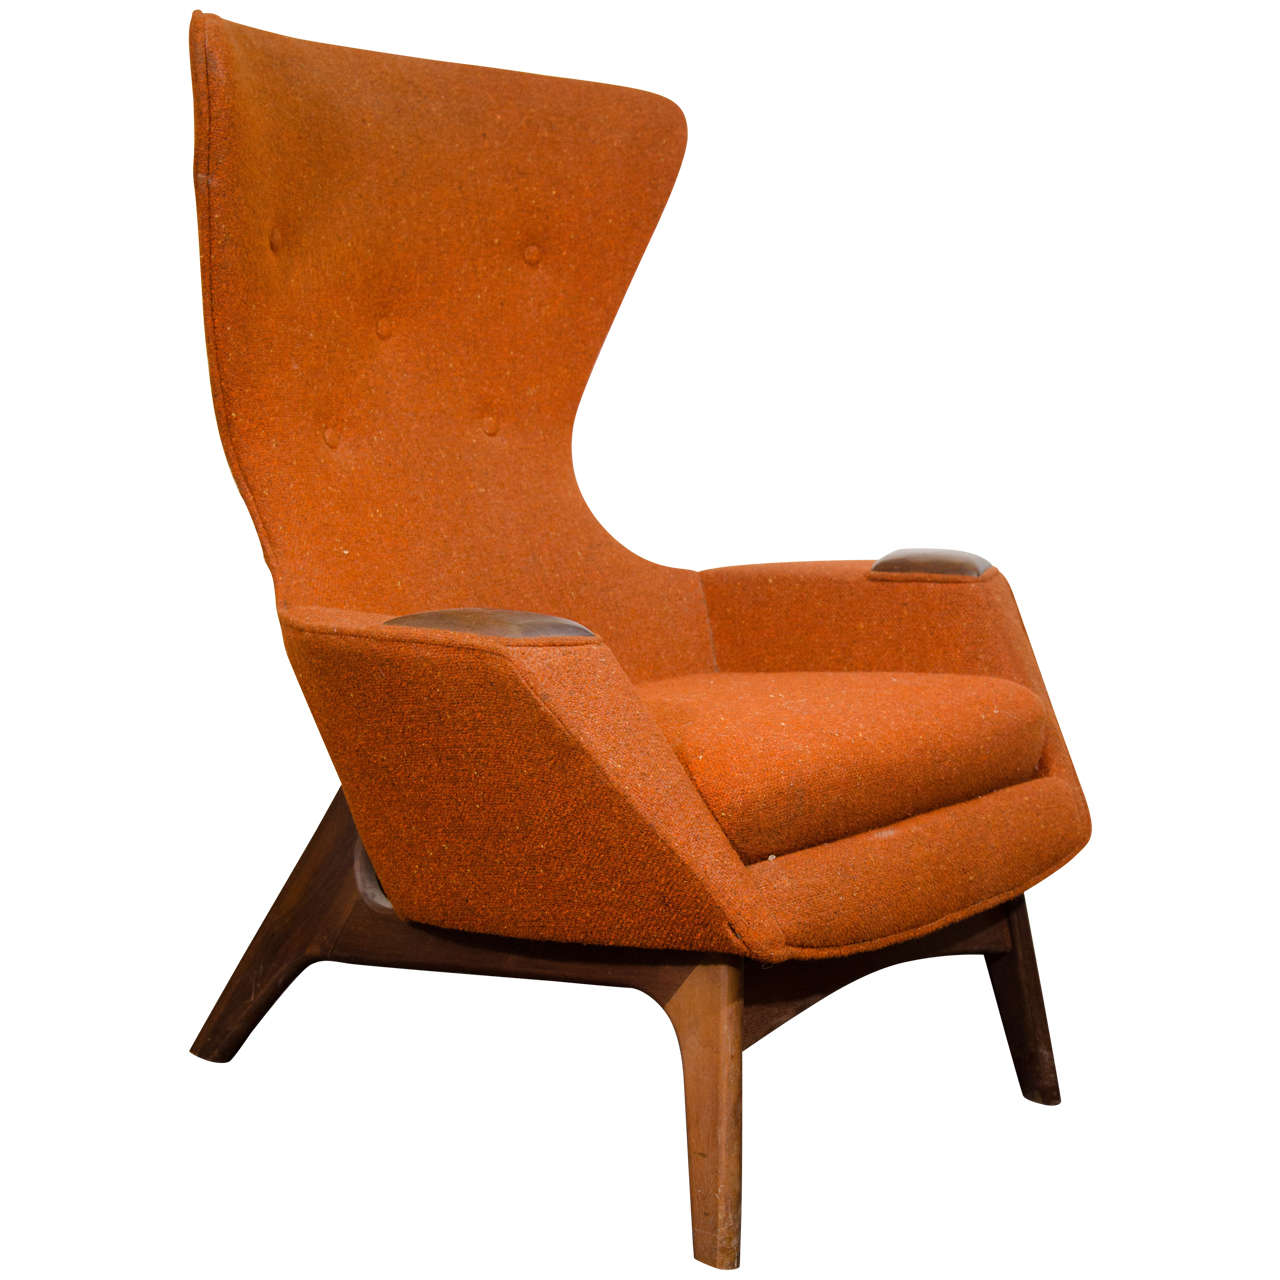 Mid Century Modernist High Back Or Desk Chair W New: Midcentury High Back Wing Chair By Adrian Pearsall At 1stdibs